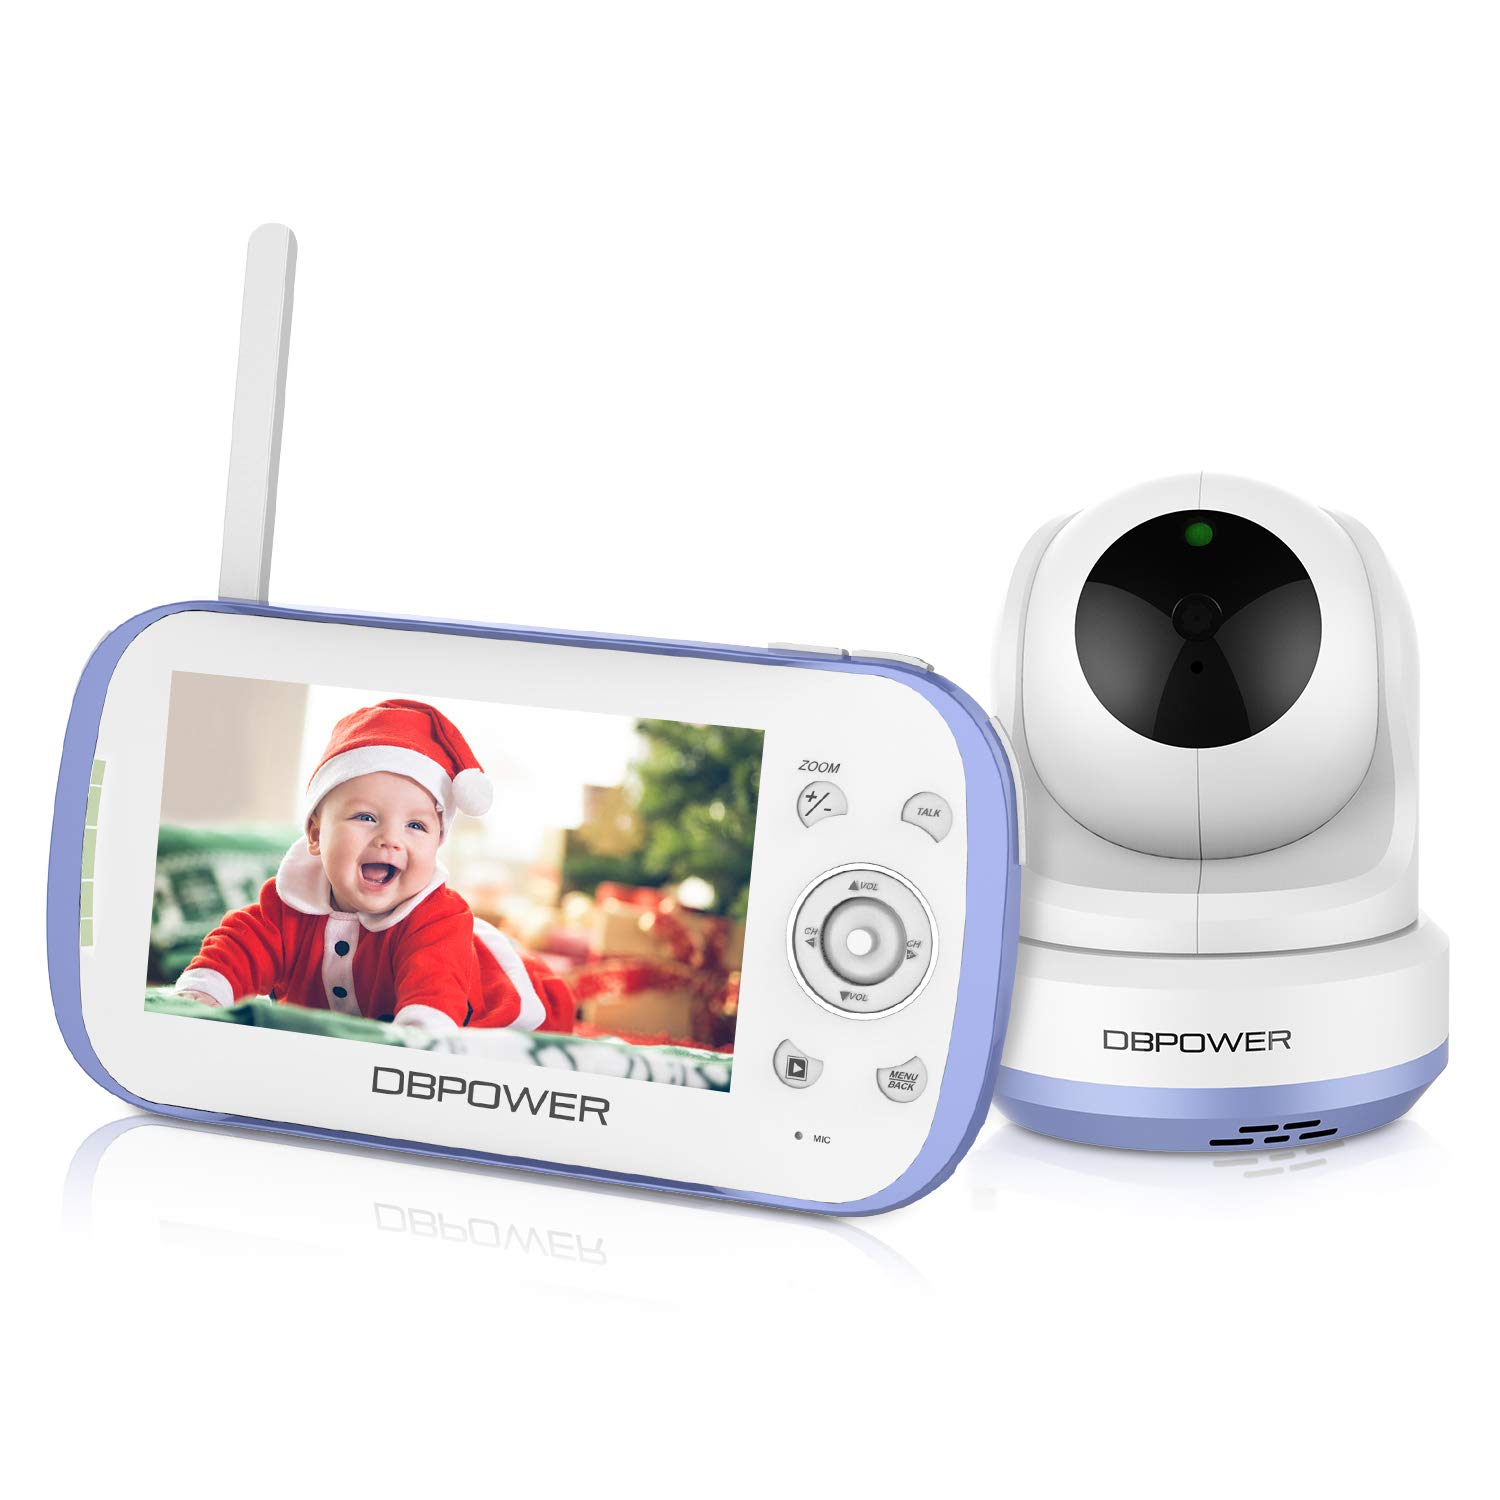 DBPOWER Video Baby Monitor, 270o Pan-Tilt-Zoom/4.3'' Large Screen/VOX/Soothing Lullabies/Temp. Monitor/2-Way Talk/Night Vision/Nightlight/Record/Sound Indicator for Elder/Pet. etc., Camera Expandable